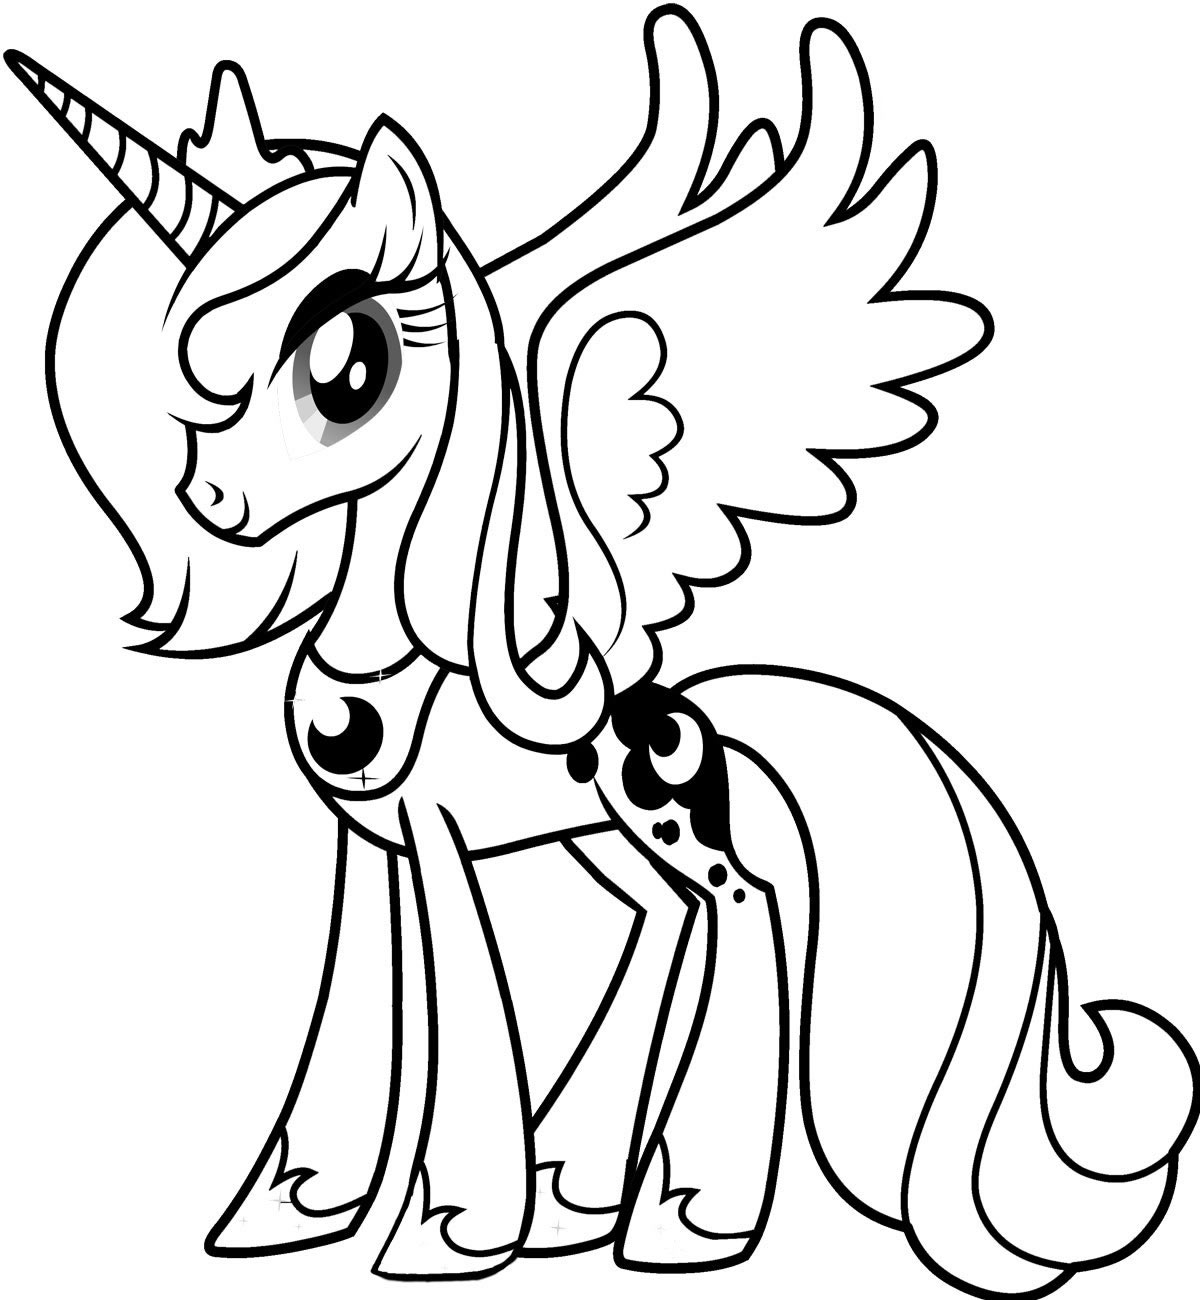 my little pony coloring pages my little pony coloring pages friendship is magic team pony little pages my coloring